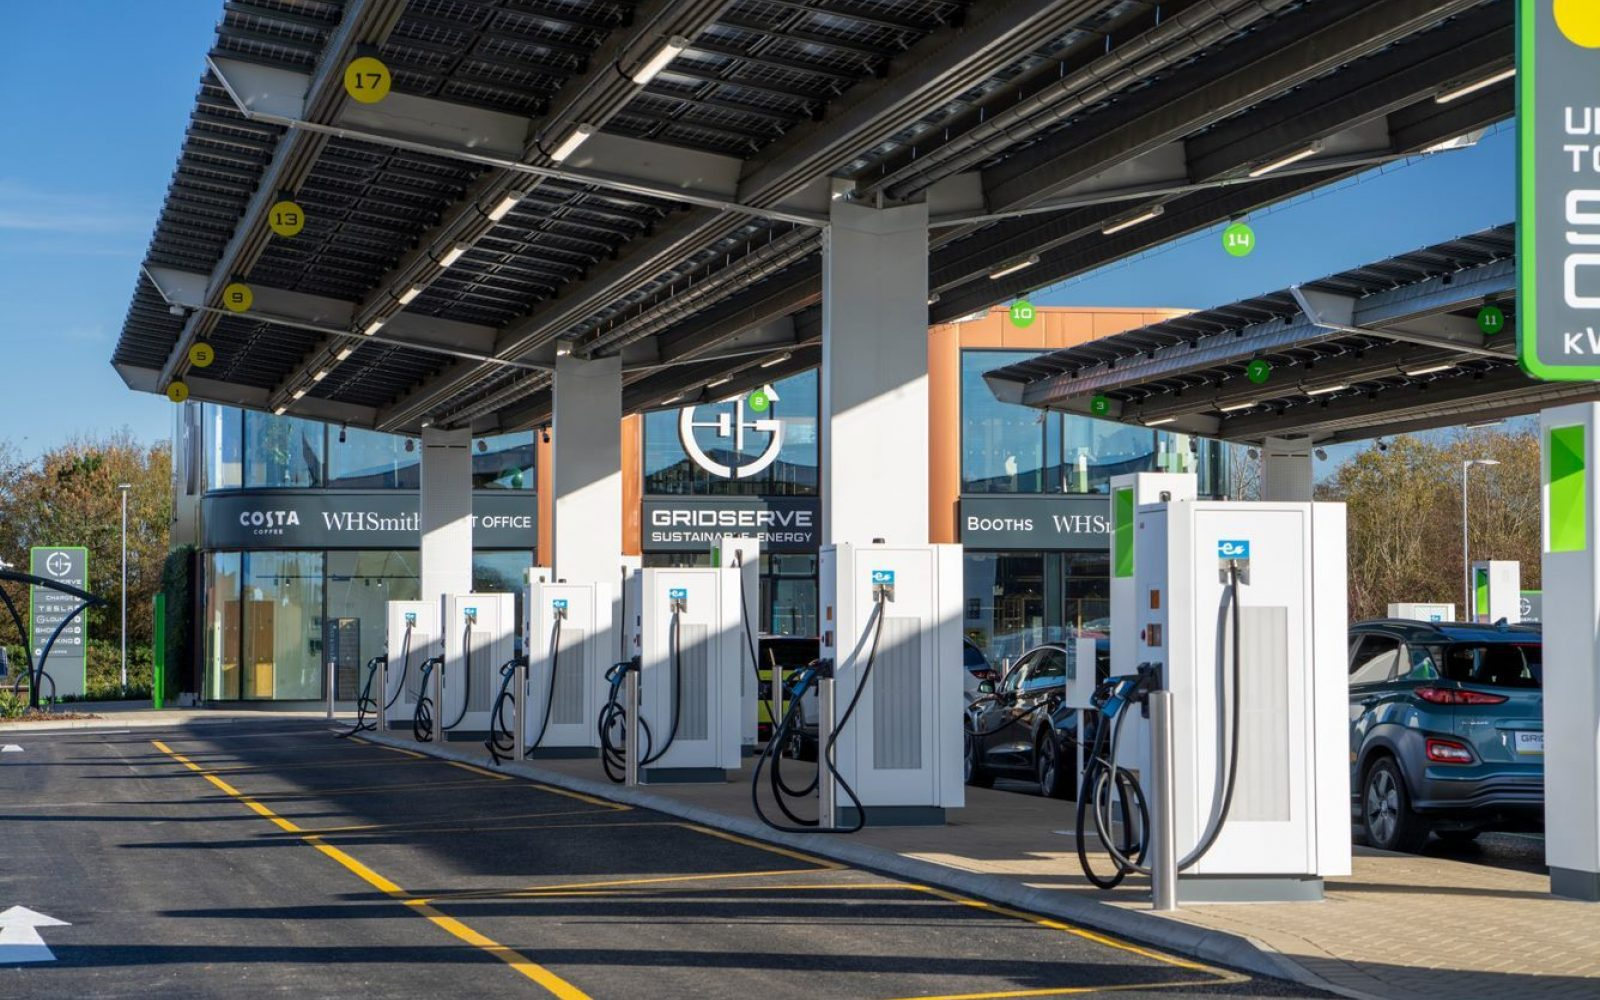 Hitachi Capital UK's relationship with GRIDSERVE has seen funding provided for electric vehicle chargers and hybrid solar farms. Image: GRIDSERVE.